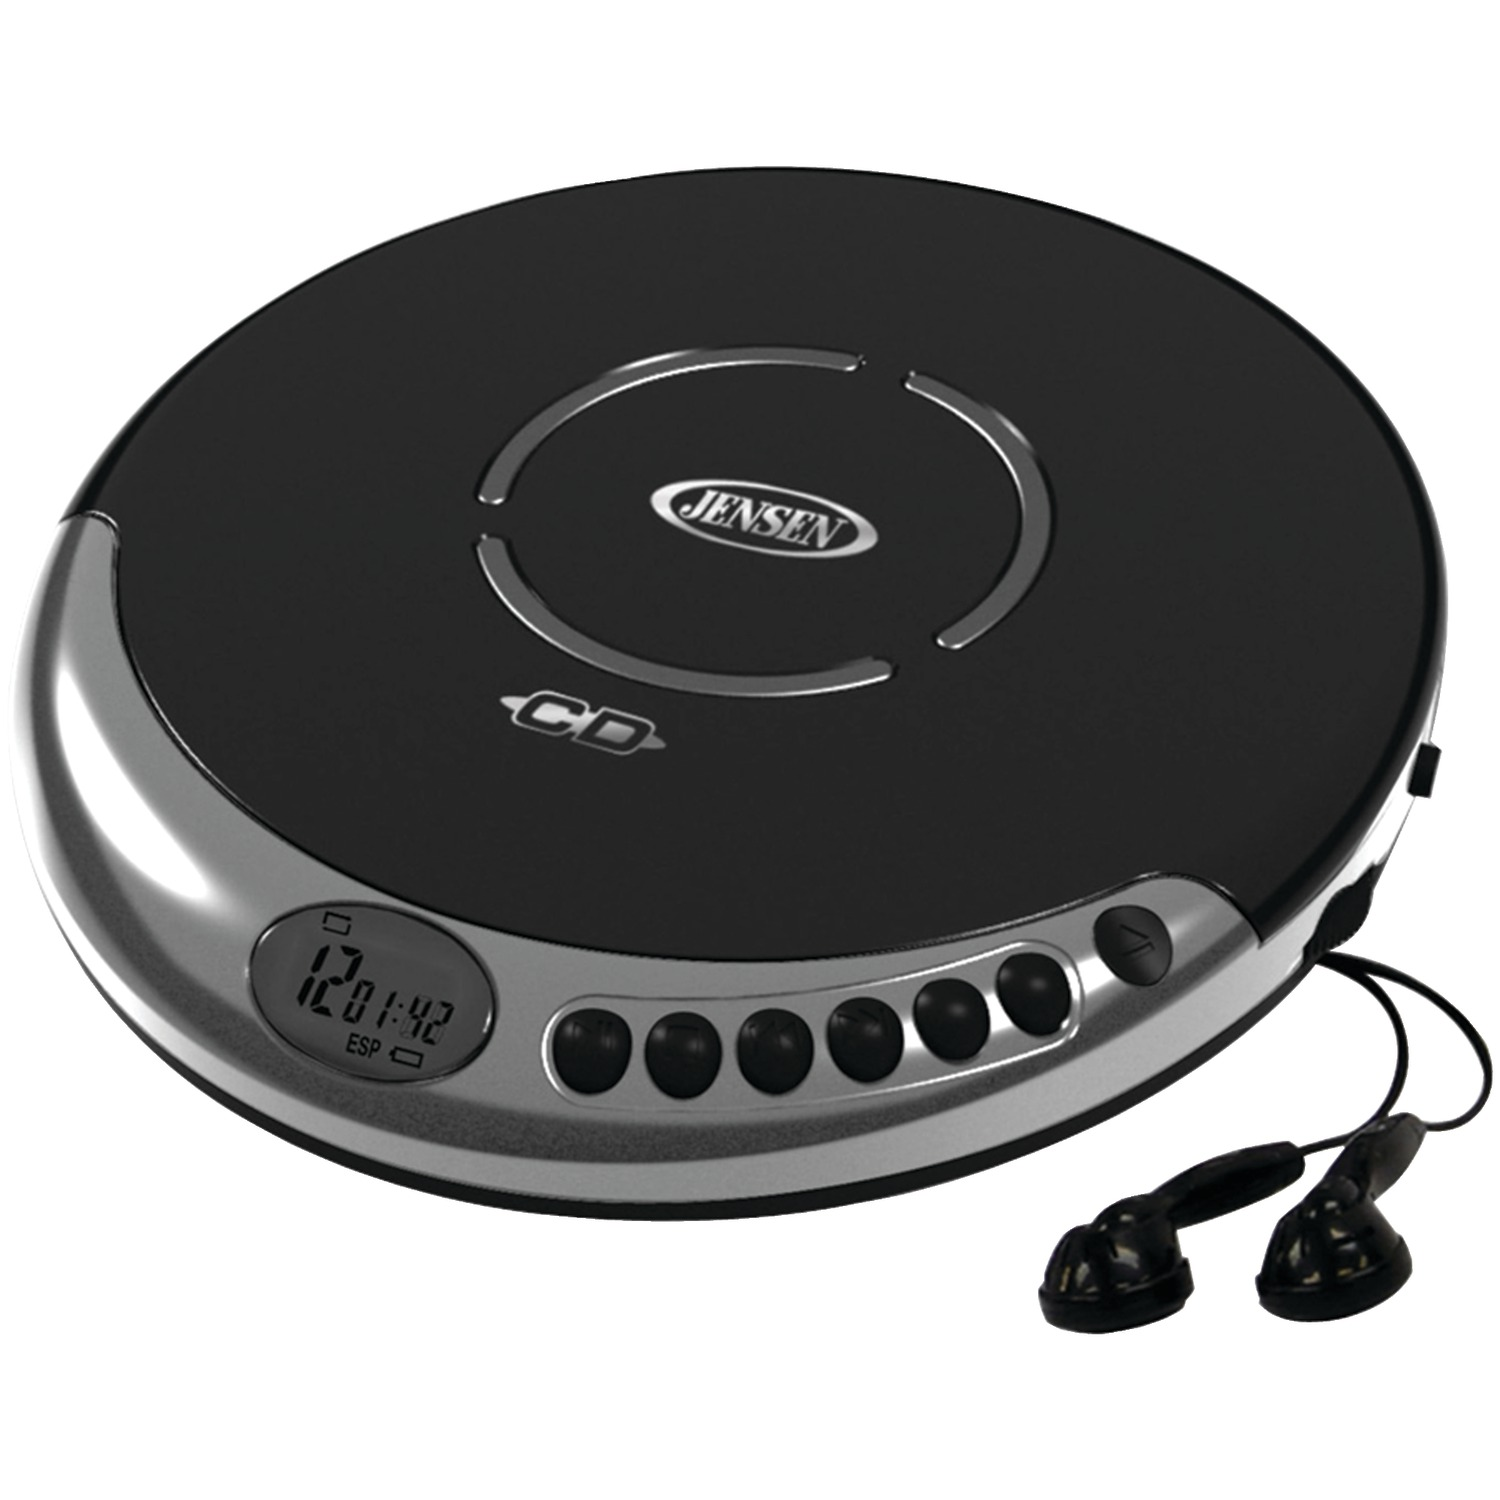 JENSEN CD-60C Personal CD Player with Bass Boost by Jensen